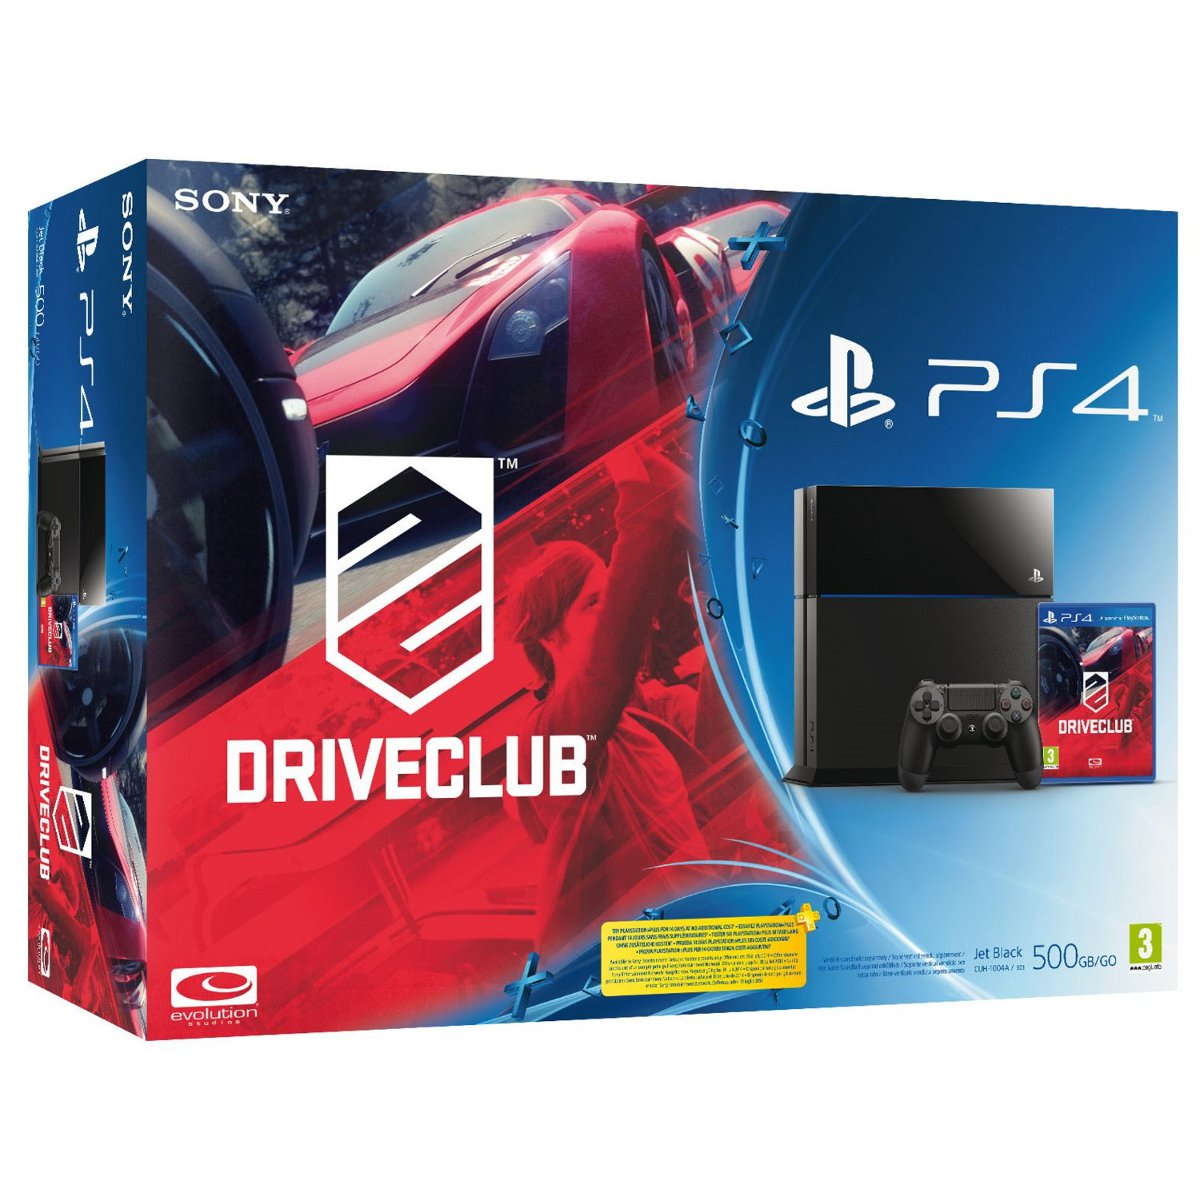 Sony playstation 4 driveclub console ps4 sony - Console informatique pas cher ...